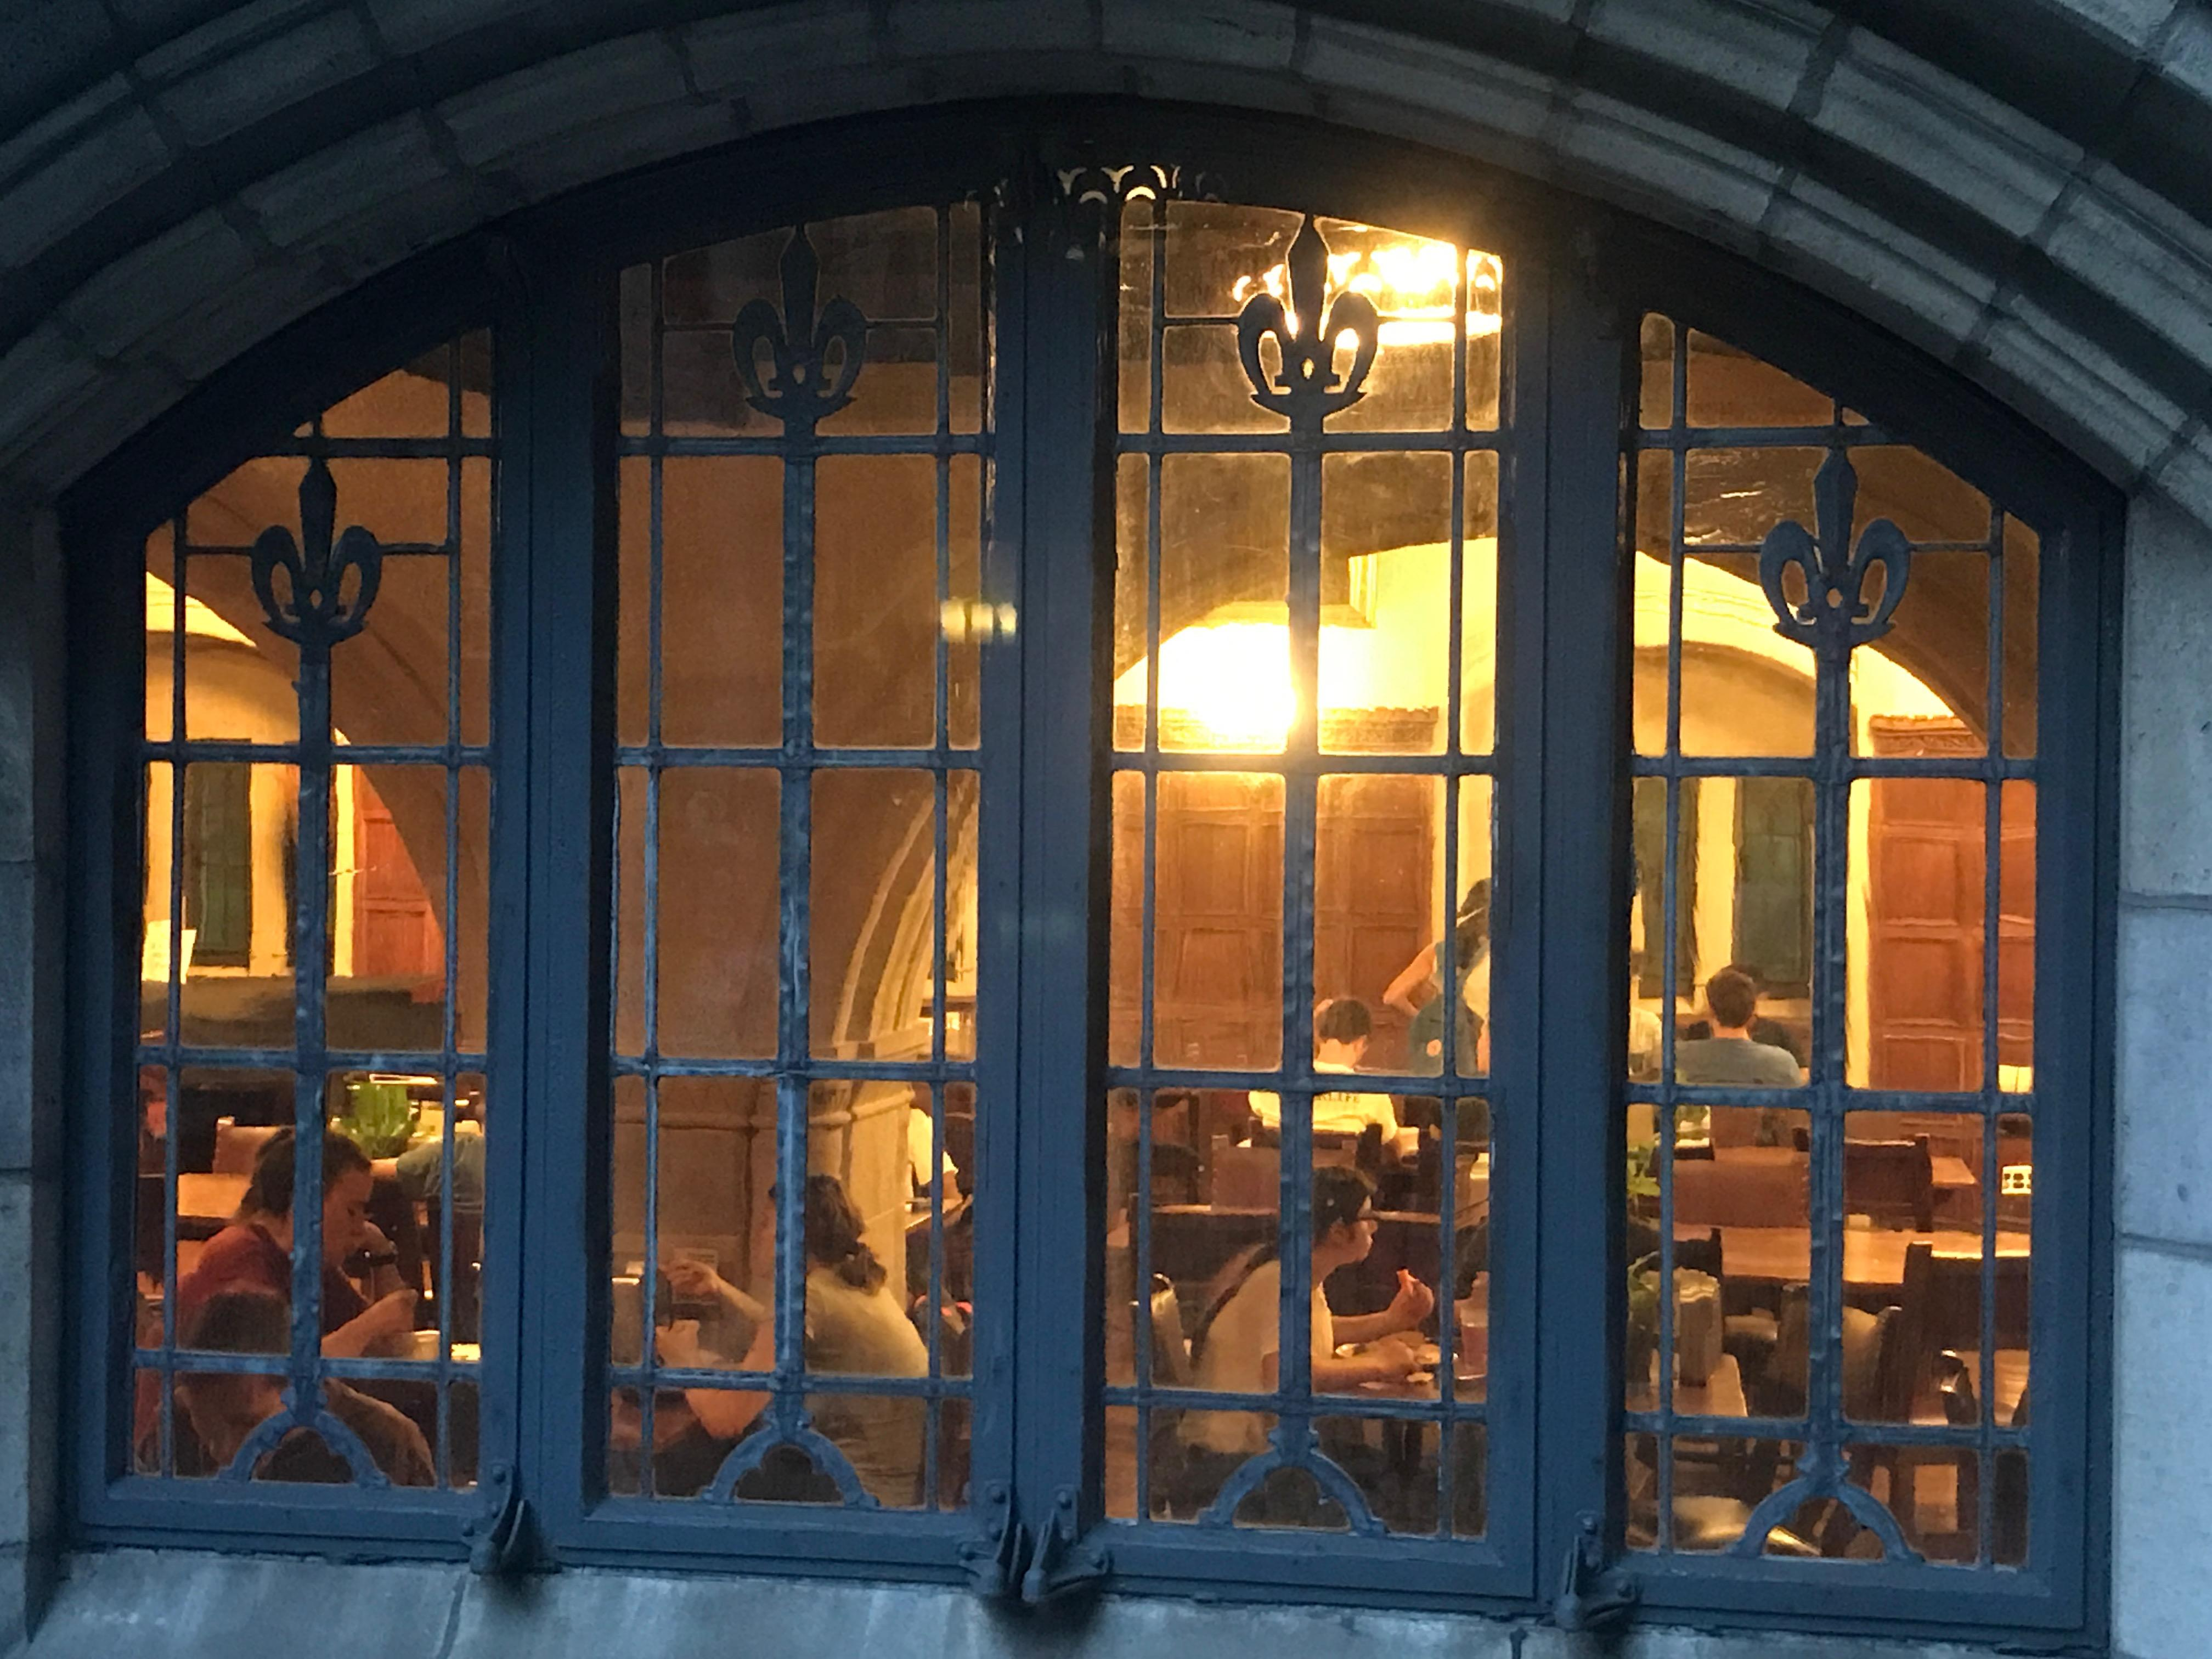 Looking in on a dining hall on Yale's stately campus in New Haven, Conn. (Photo by Rick Holmes)